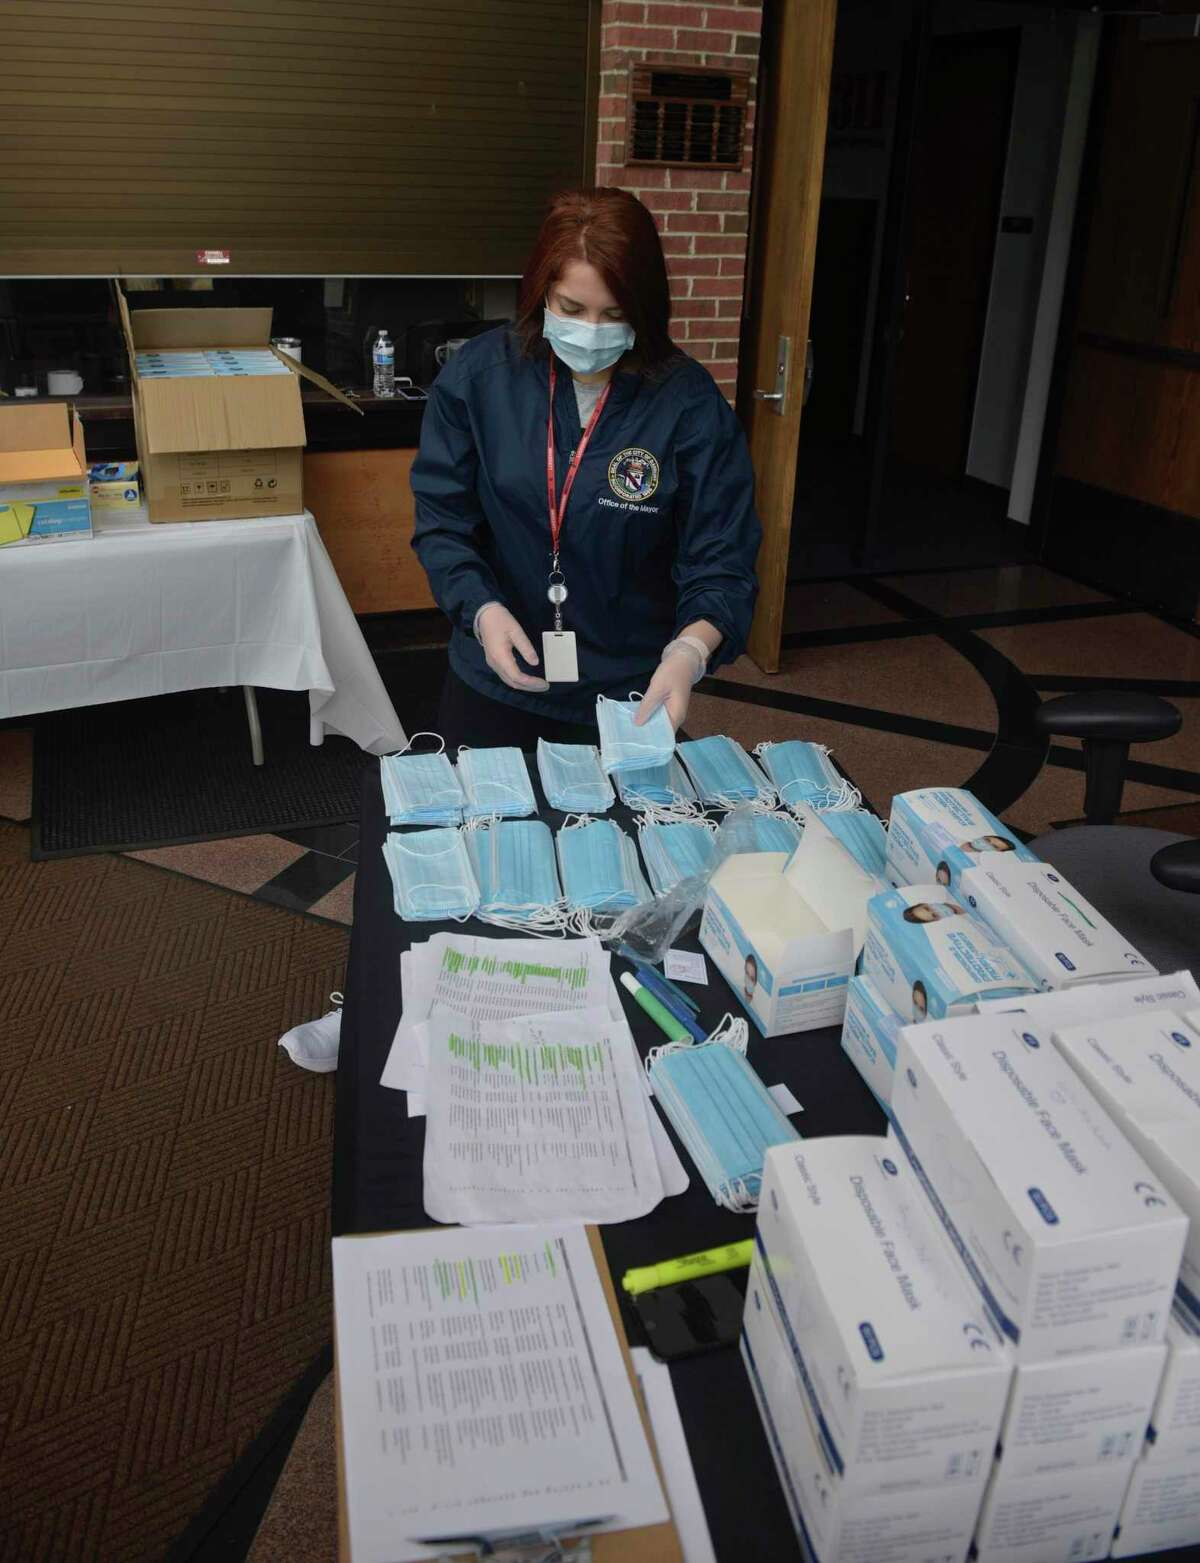 Taylor O'Brien, public relations co-ordinator, counts out face at city hall. As of around 3:30 p.m. Friday, O'Brien was in the lead with $1,930 raised. Boughton collected $1,465. Community members and local banks have donated about $67,850 total to feed Danbury area families for the holidays. The goal is to raise at least $100,000.